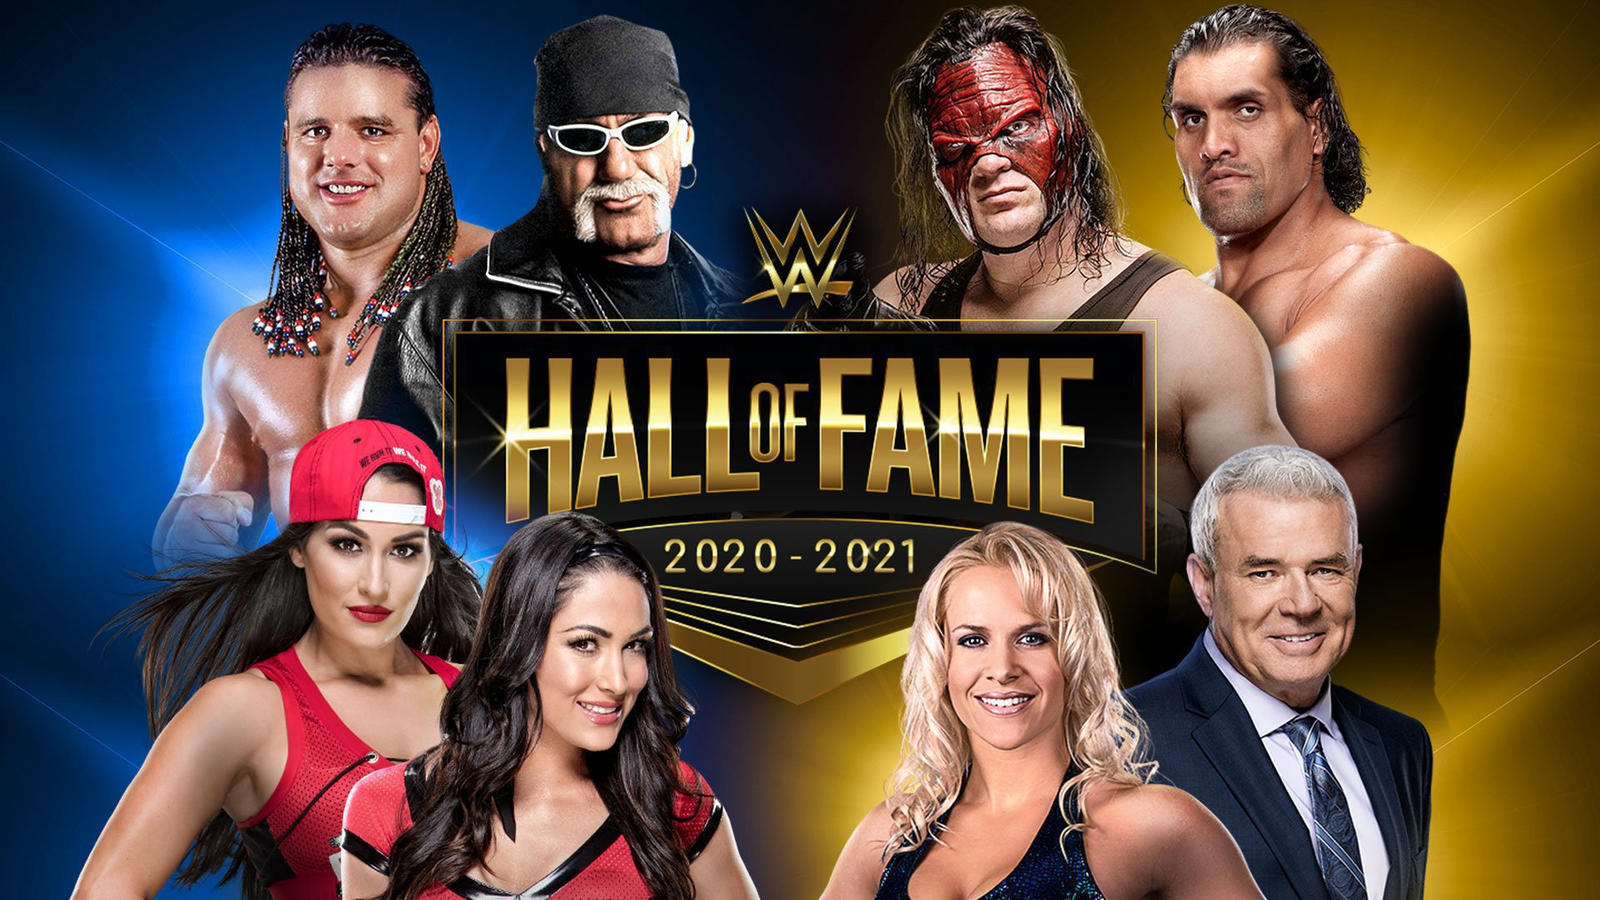 2020 - 2021 WWE Hall Of Fame Induction Ceremony